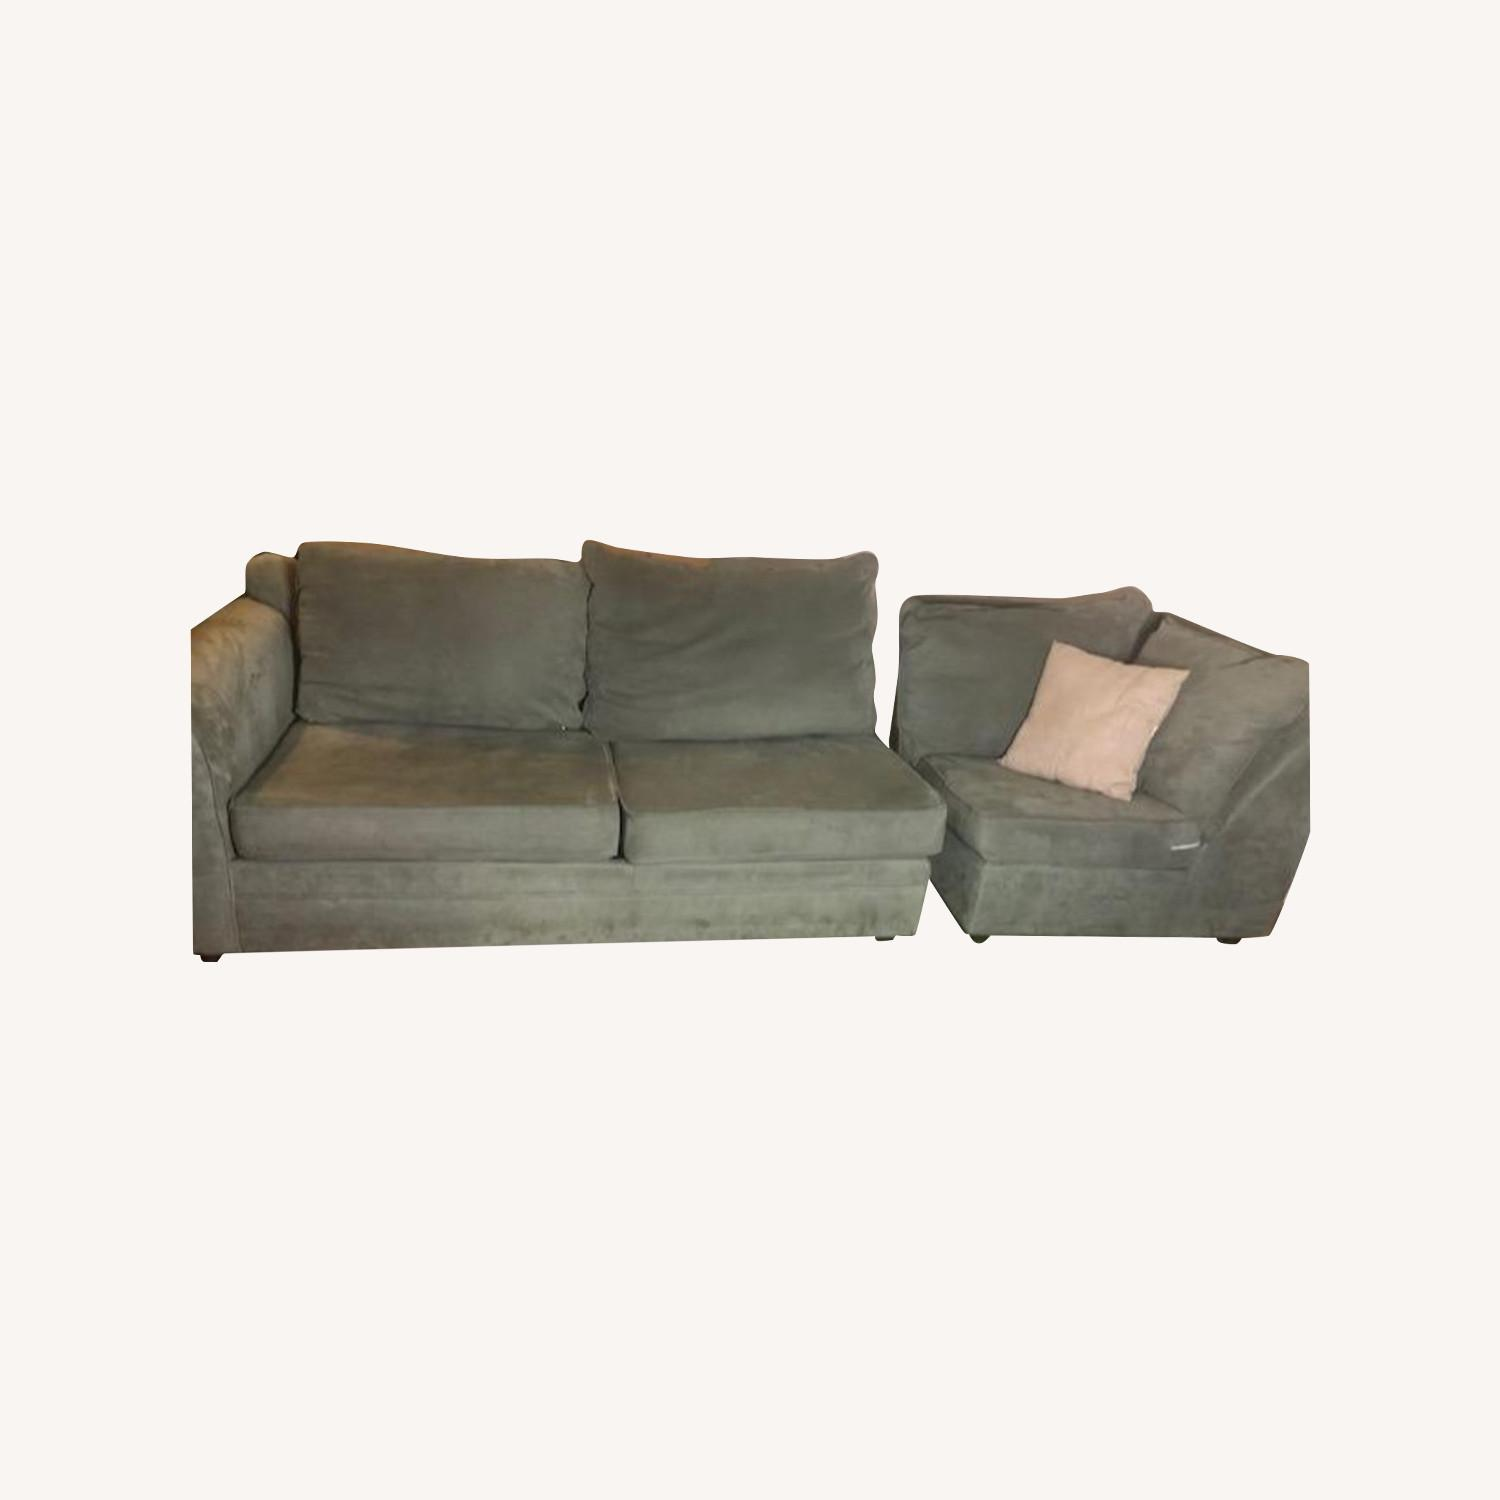 Bob's Discount Right Arm 2 Seater Sofa and Corner Chair - image-0